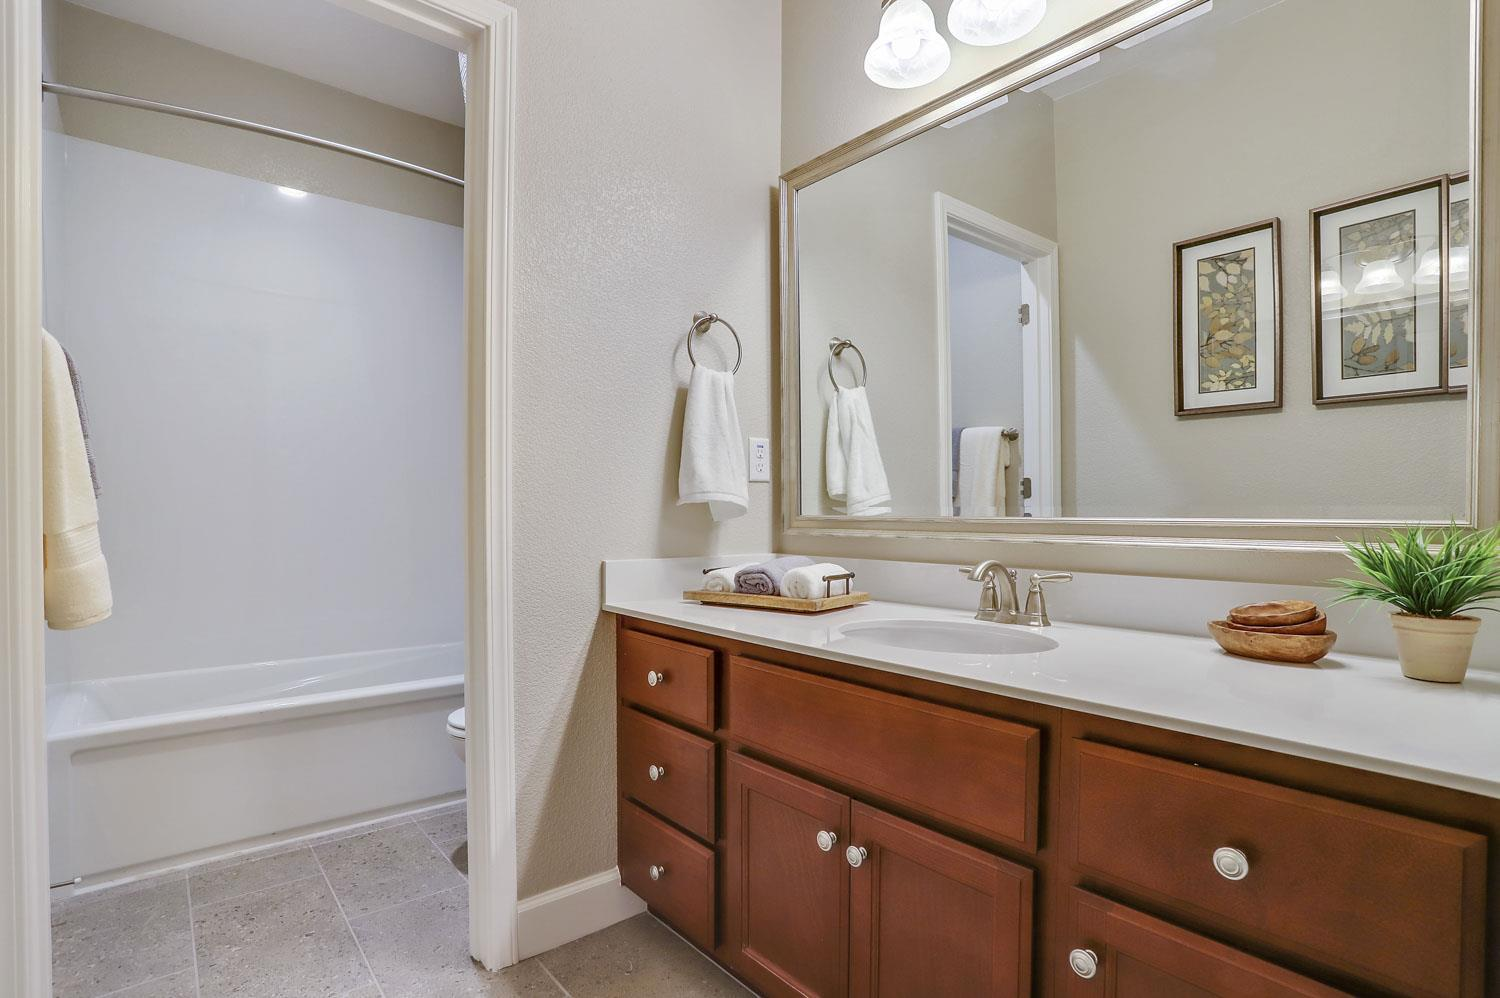 Bathroom featured in The Cambria By Stonefield Home in Merced, CA